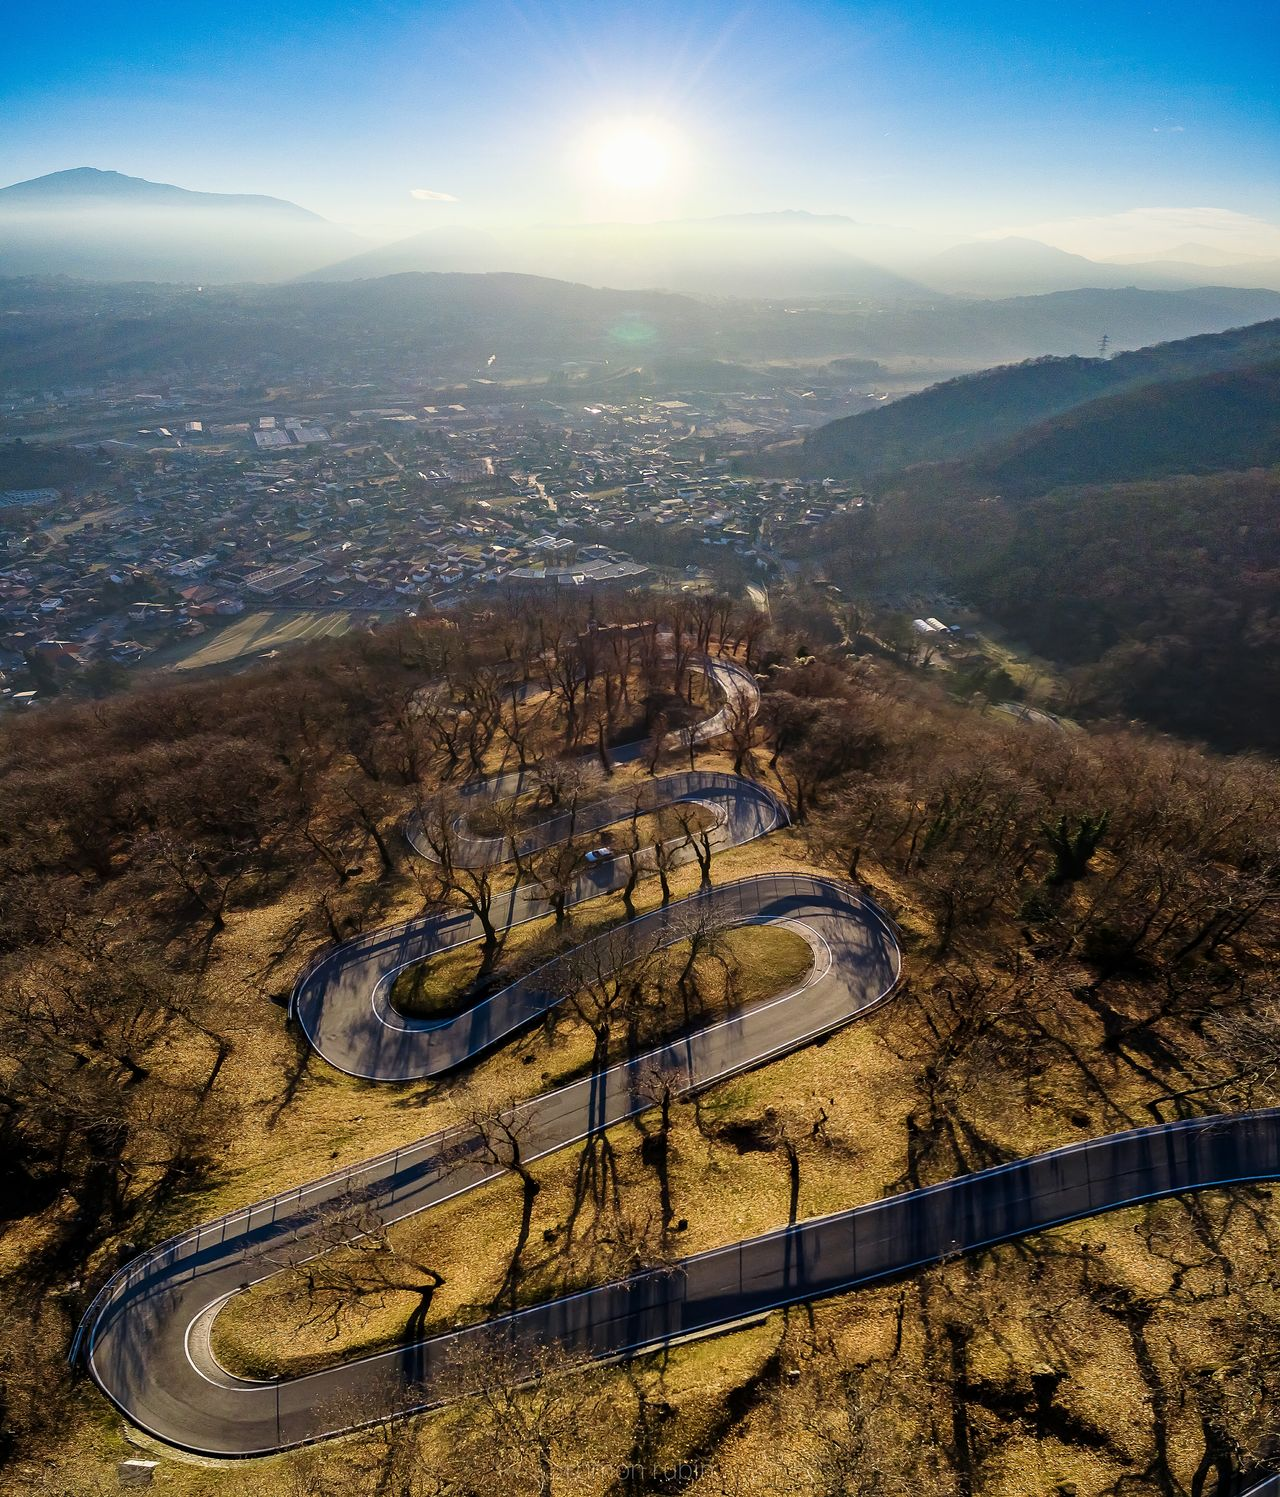 Snaky Road Sky Outdoors No People Nature Scenics Day Road Roads Roadscenes Downhill Curves Hill Hillside Mountain Valley Car Motorcycle Travel Discover  Aerial View Aerial Shot Vertorama Panorama